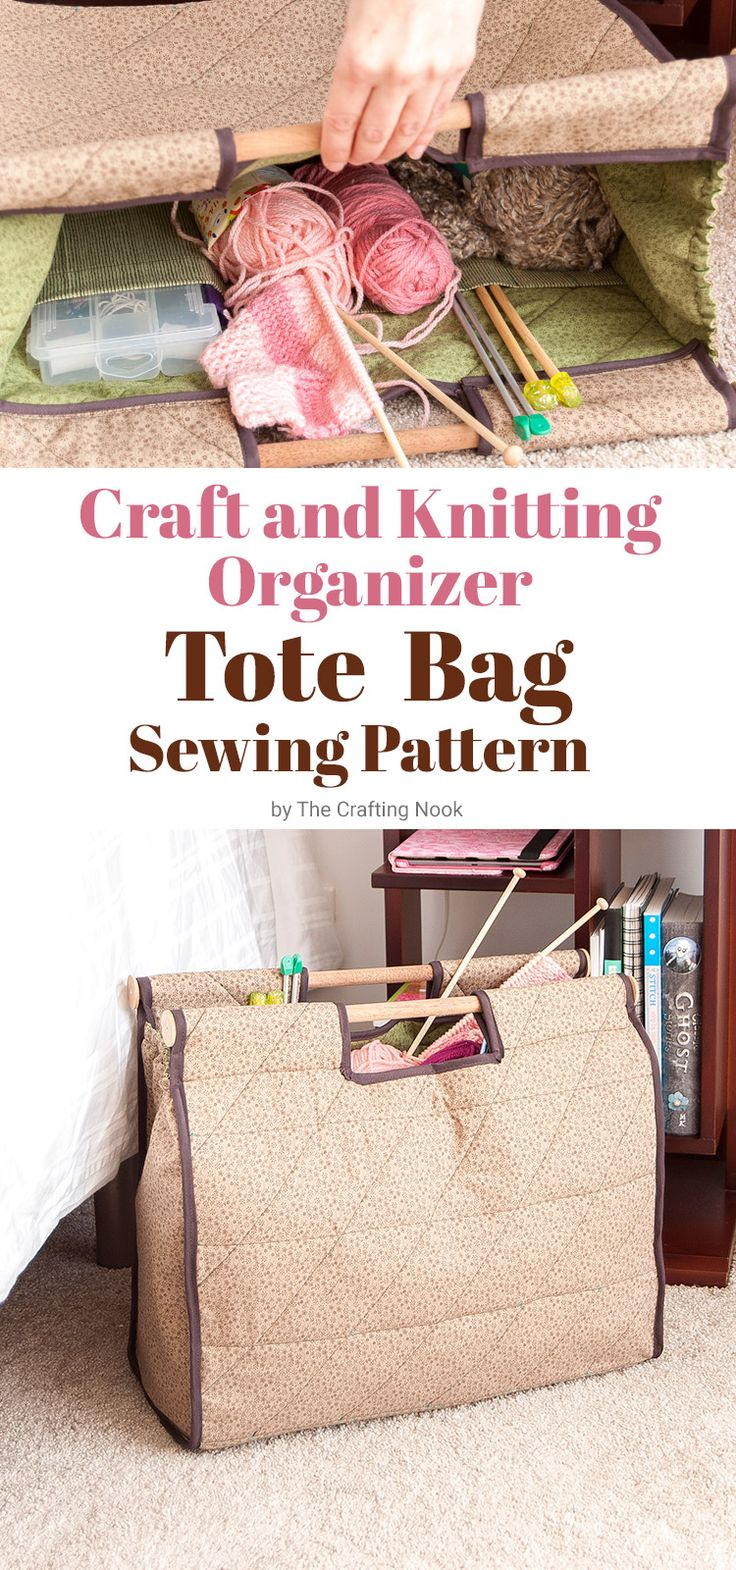 Organization Time! If you need a cute bag to keep organized your current craft or knitting project in one place, I got you covered! Check out this cute and easy Craft and Knitting Organizer Tote Bag (with free Sewing Pattern)